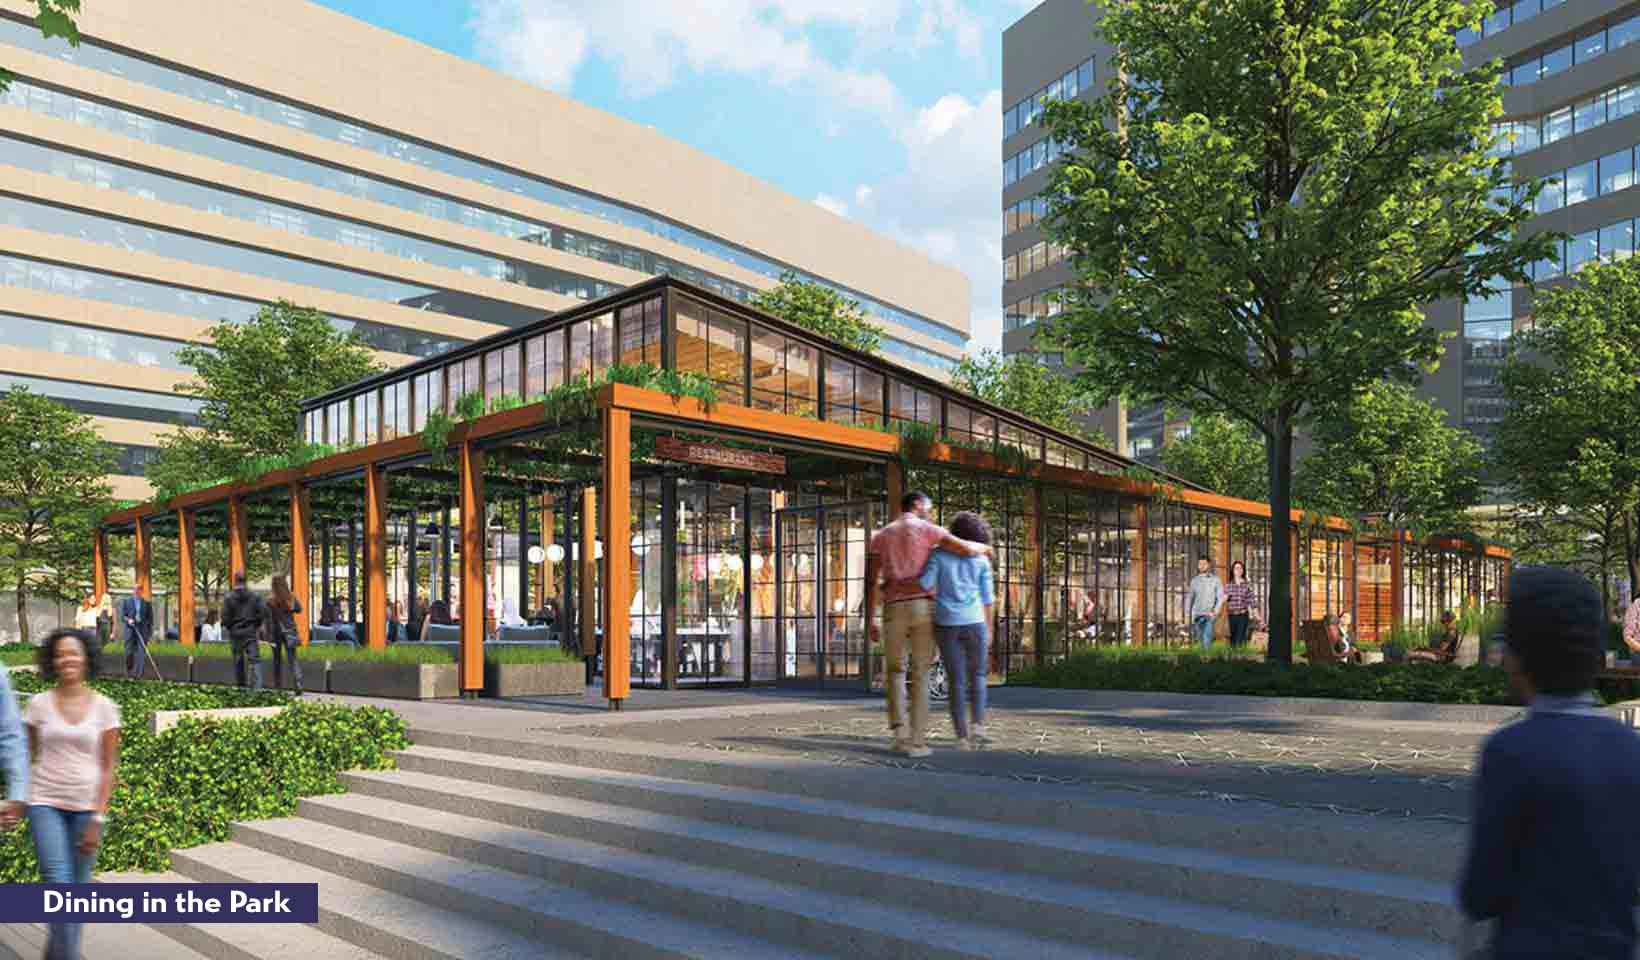 Rendering of people enjoying the Dining in the Park retail space